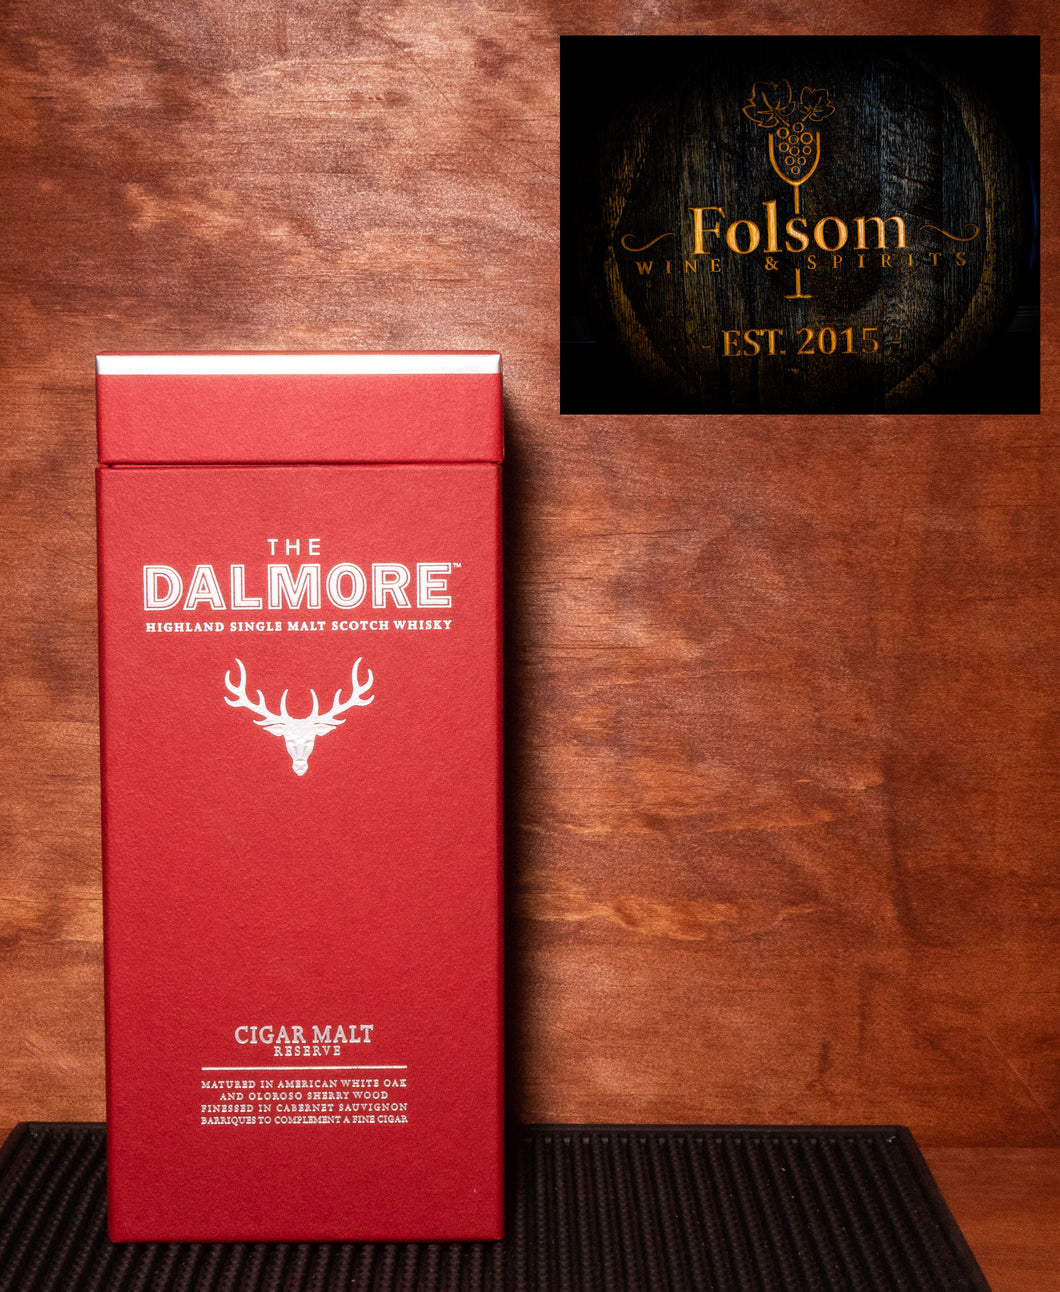 THE DALMORE CIGAR BLEND